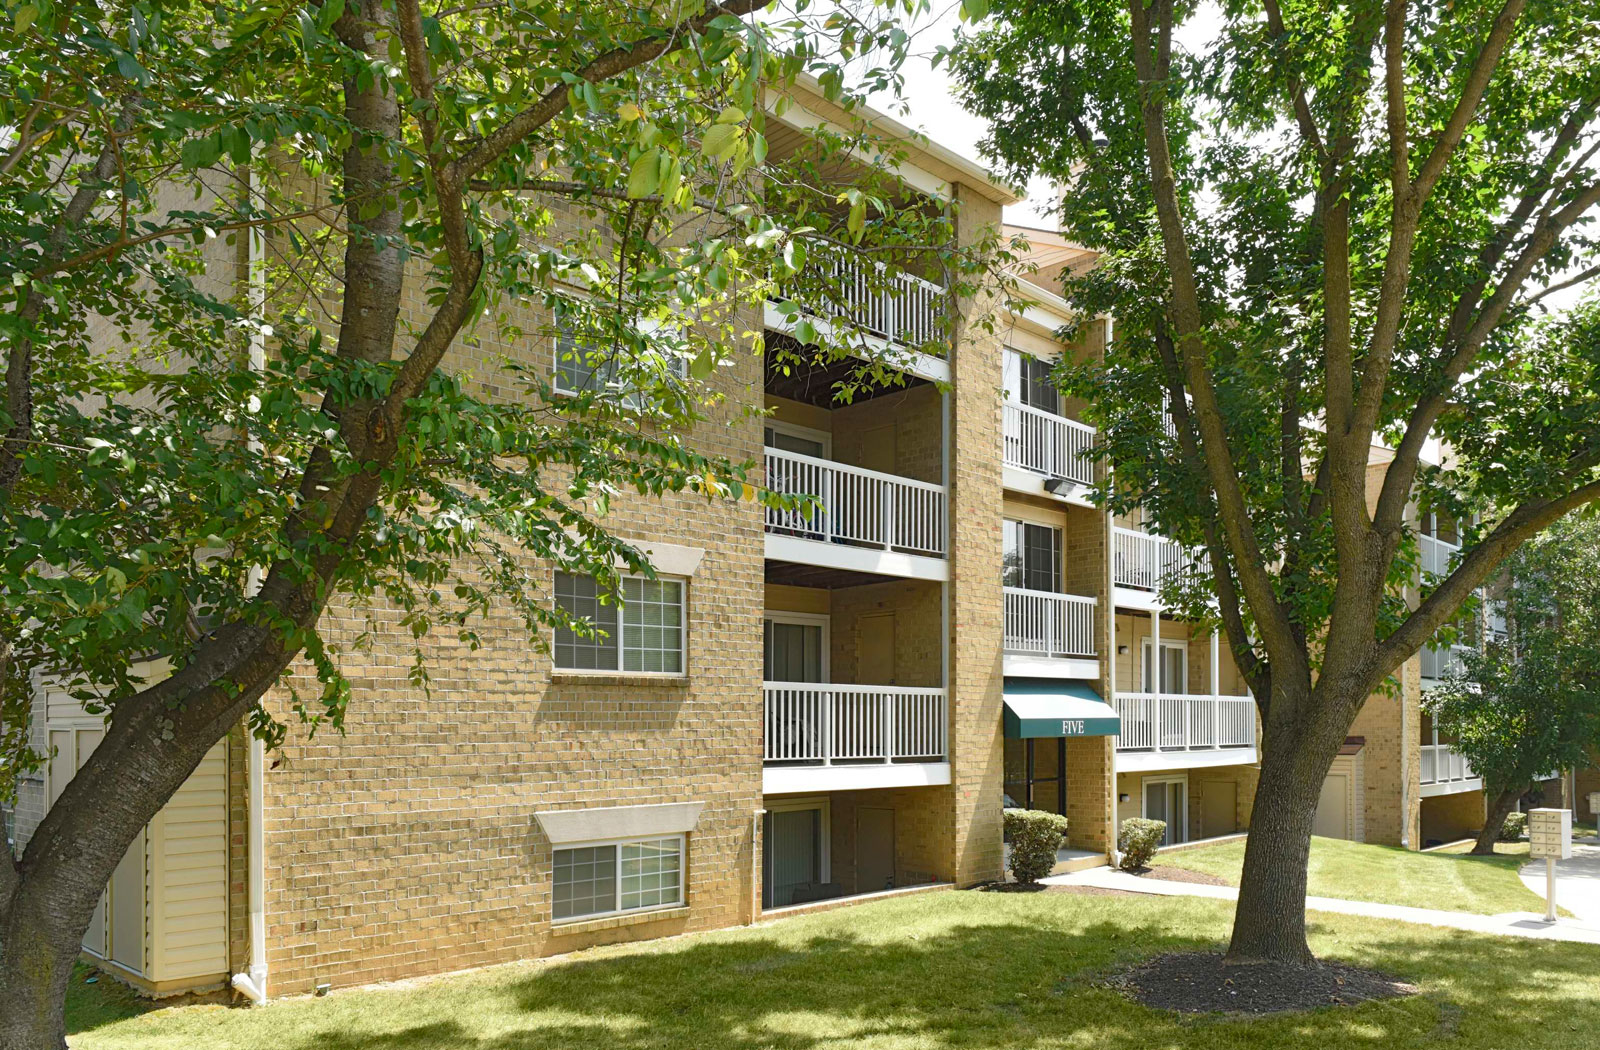 Mcdonogh Township Apartments In Owings Mills Md 21117